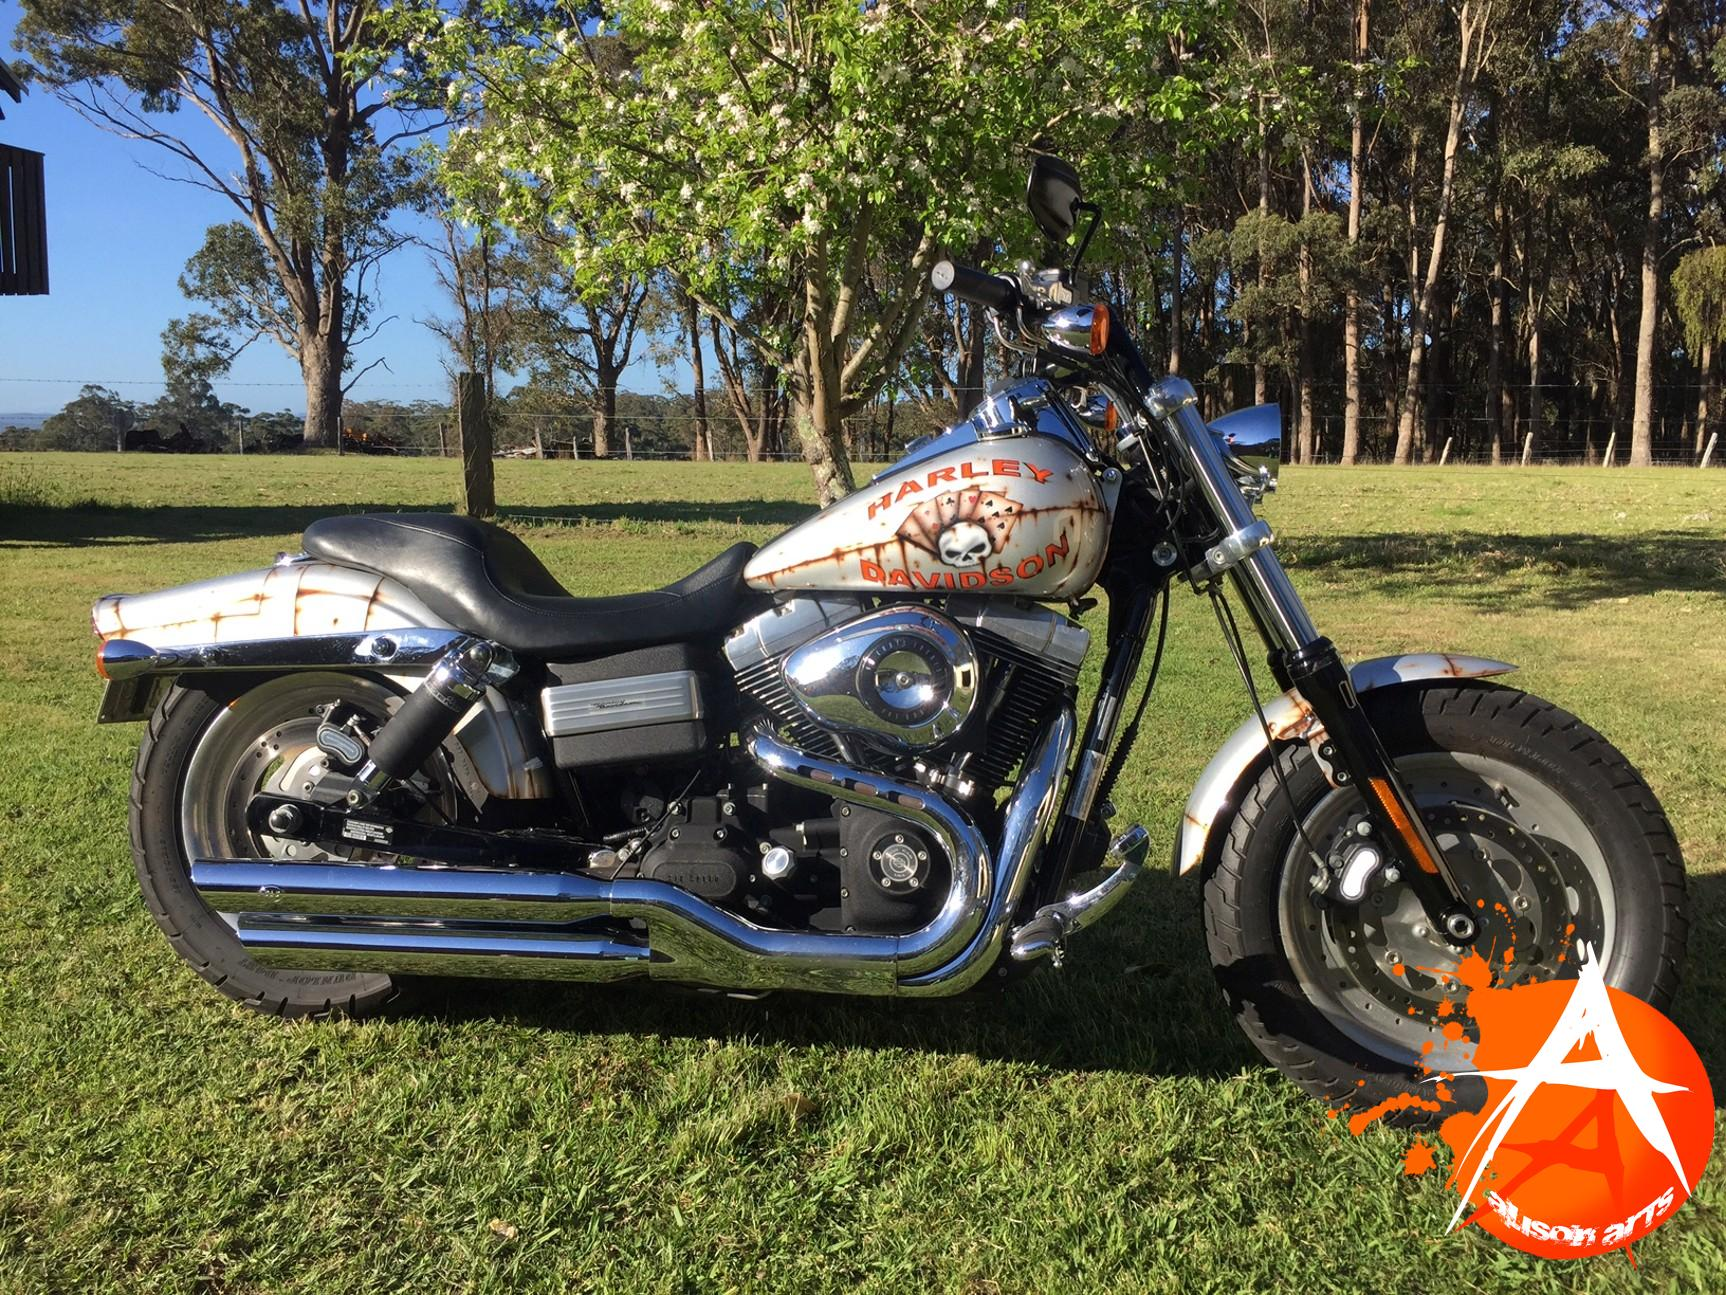 Custom airbrushed Harley Davidson - rusty design